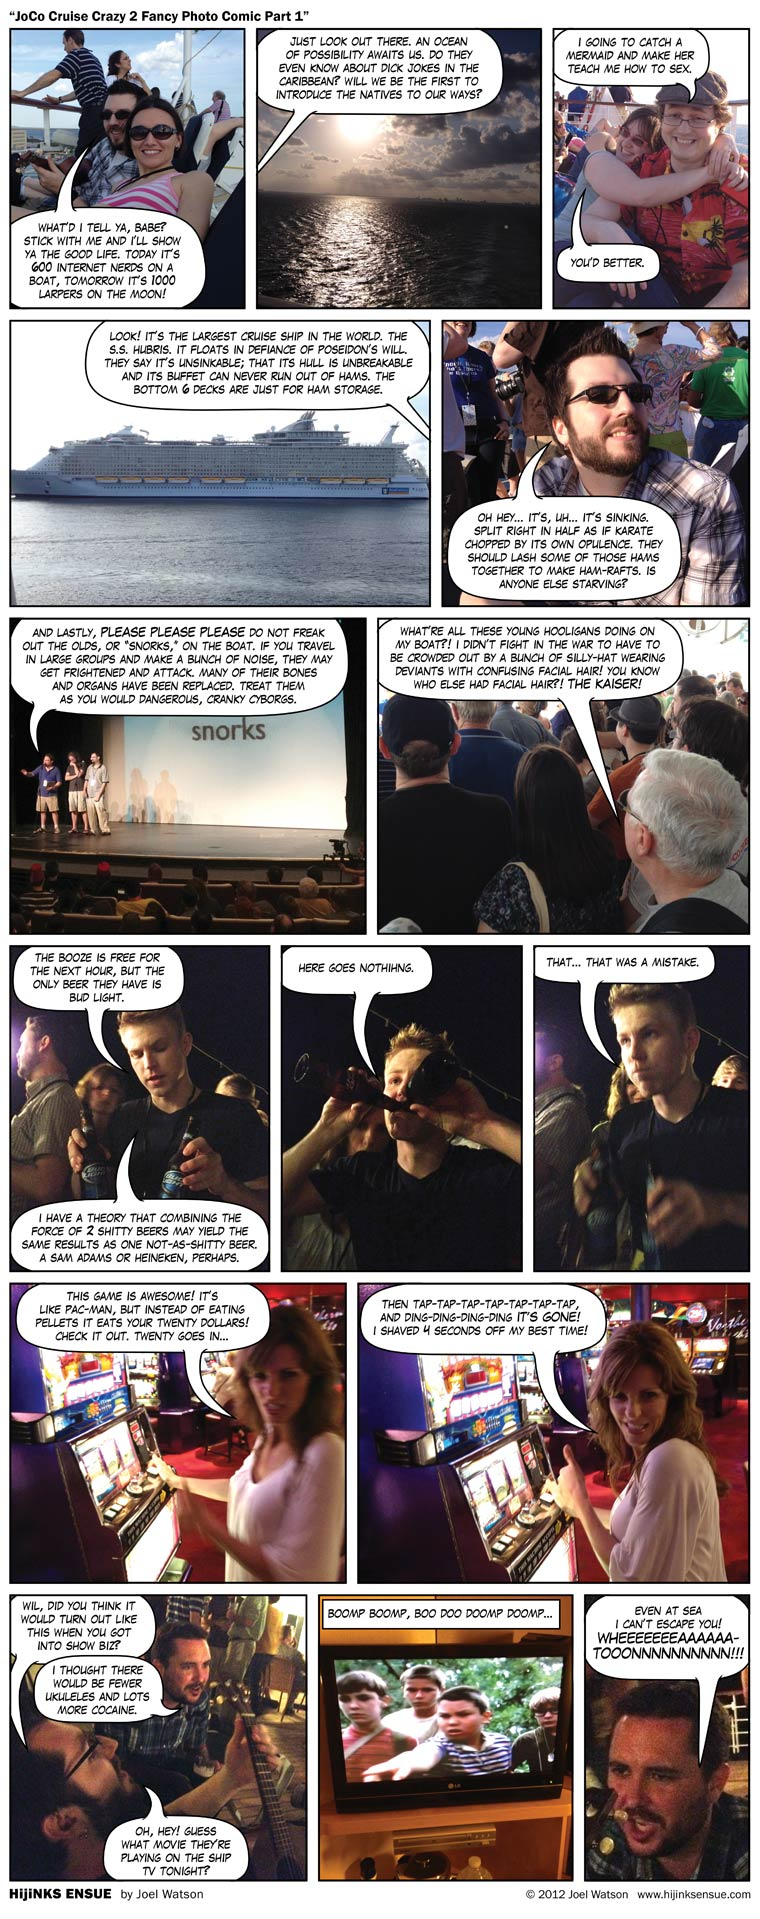 JoCo Cruise Crazy 2 Fancy Photo Comic Part 1